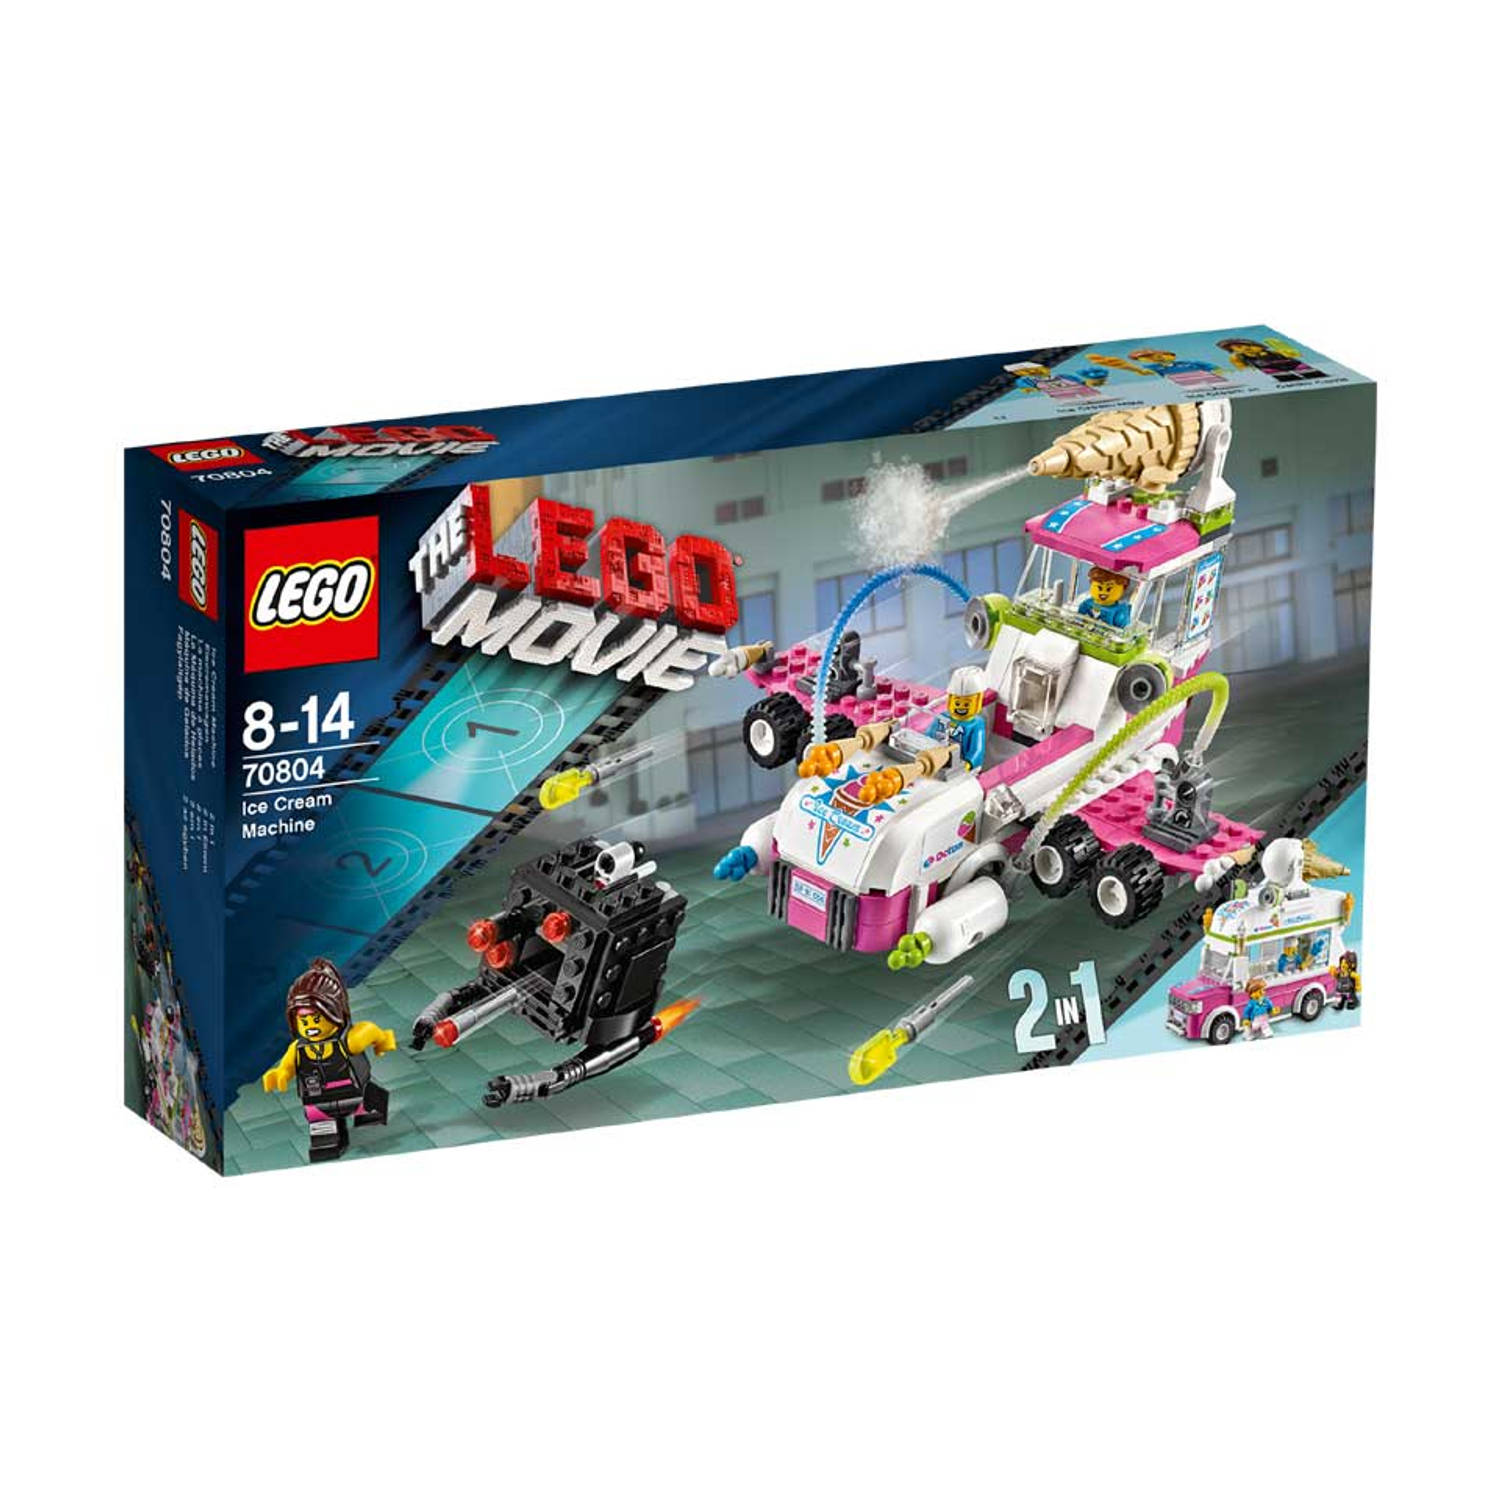 LEGO 70804 MOVIE IJSMACHINE